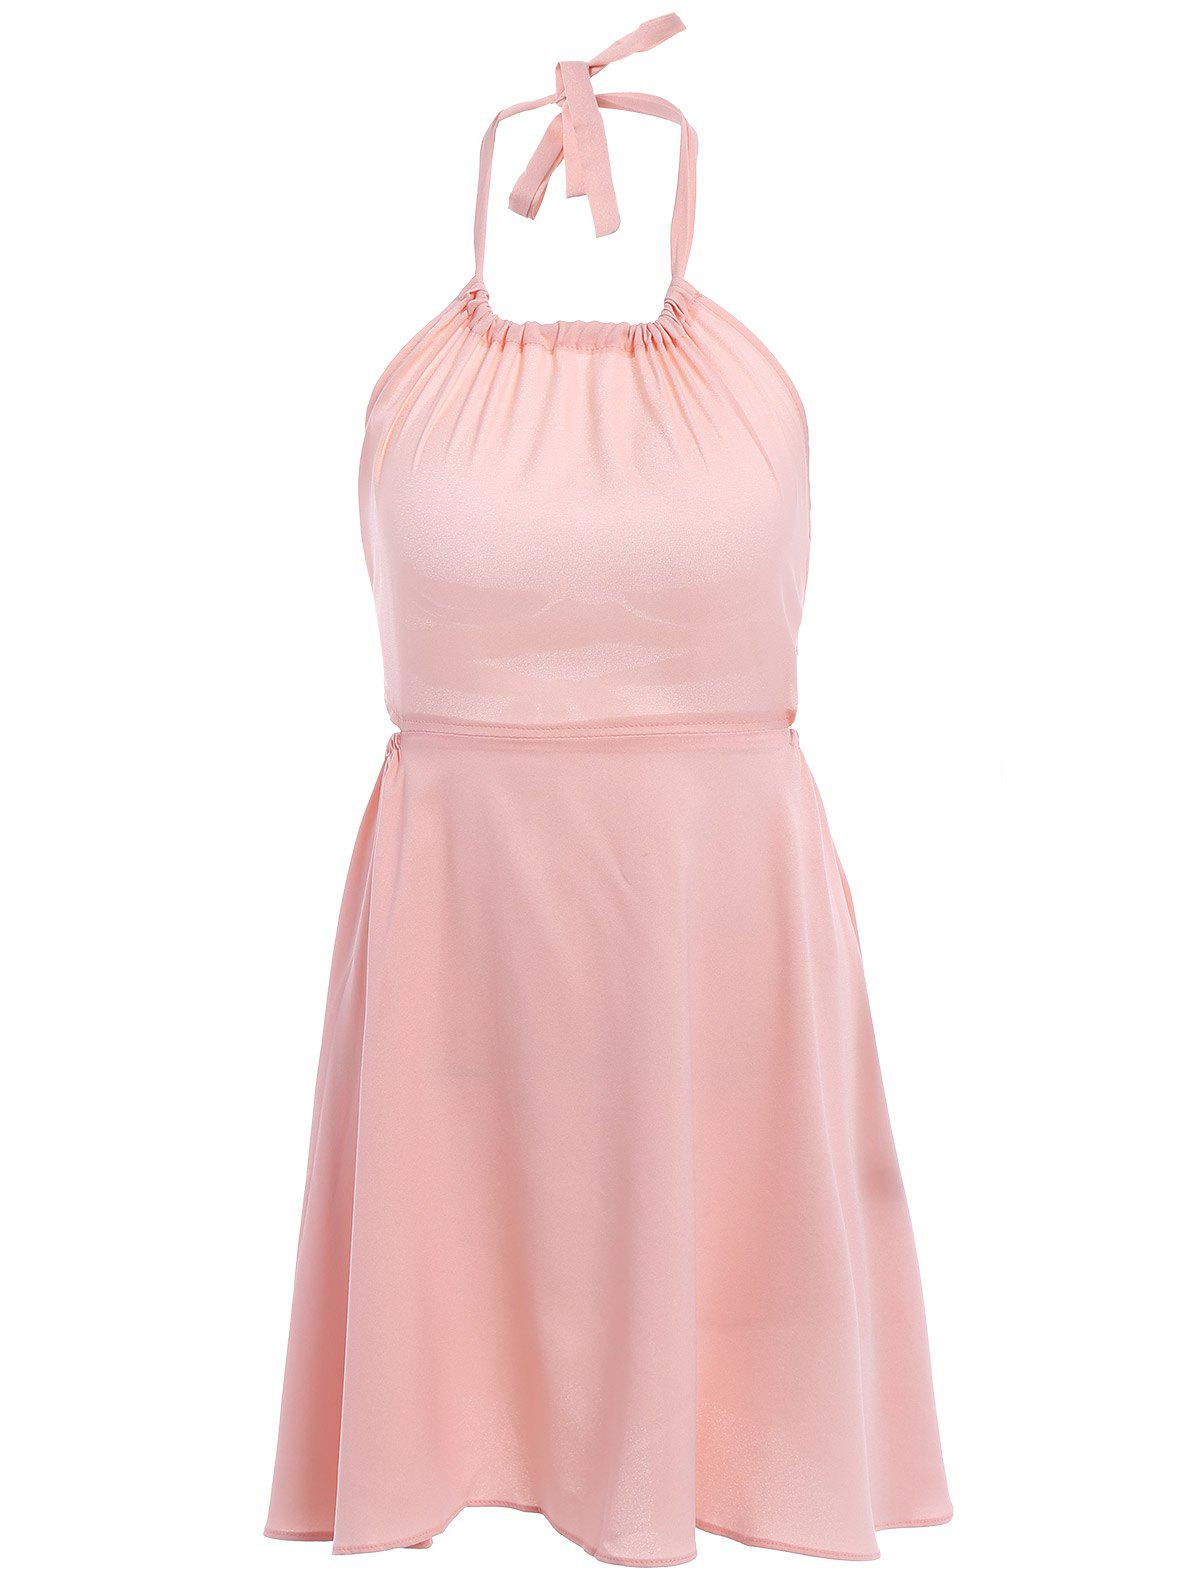 Stylish Halter Neck Sleeveless Backless Pink Women's Dress - PINK M